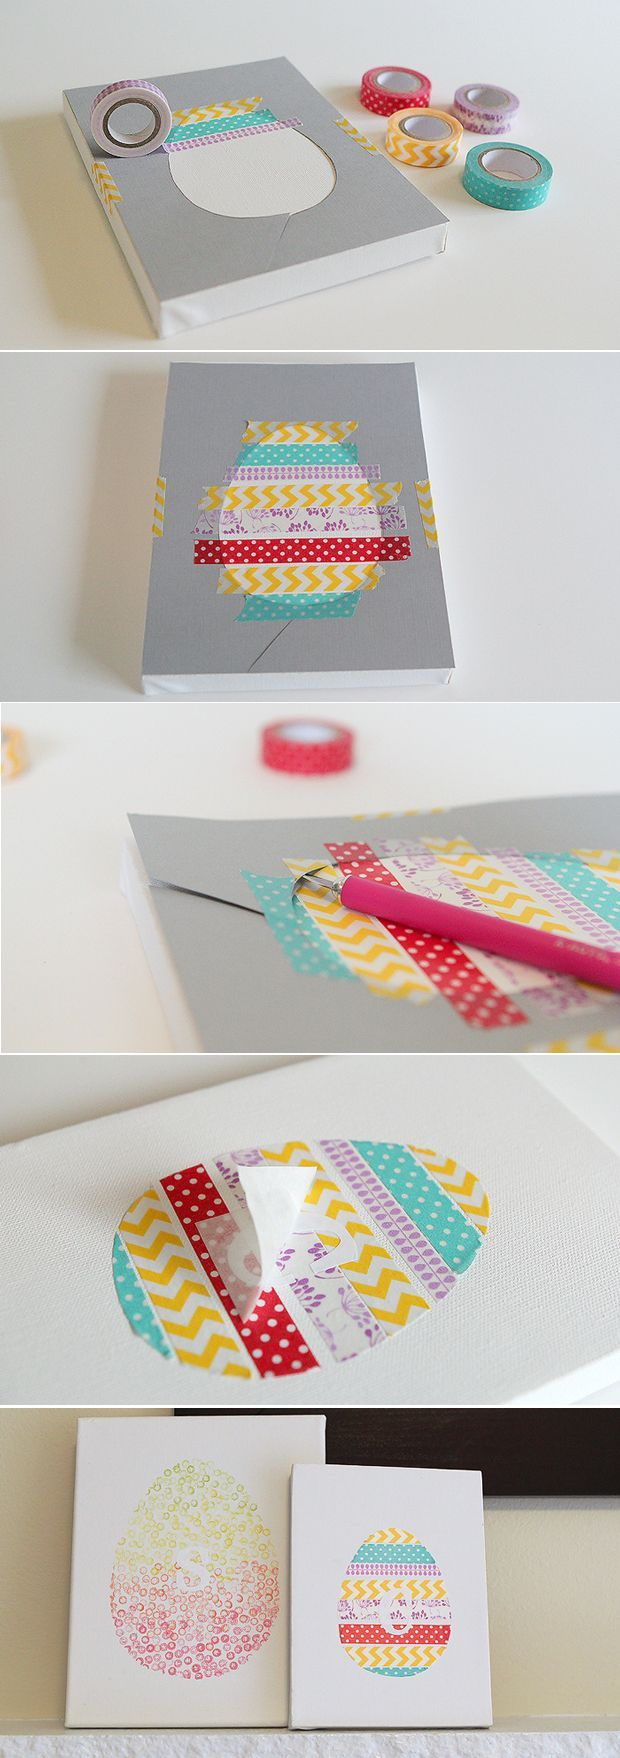 Washi Tape Designs #DIY #Kidscrafts   This might also be cute with random objects on canvas or maybe hearts